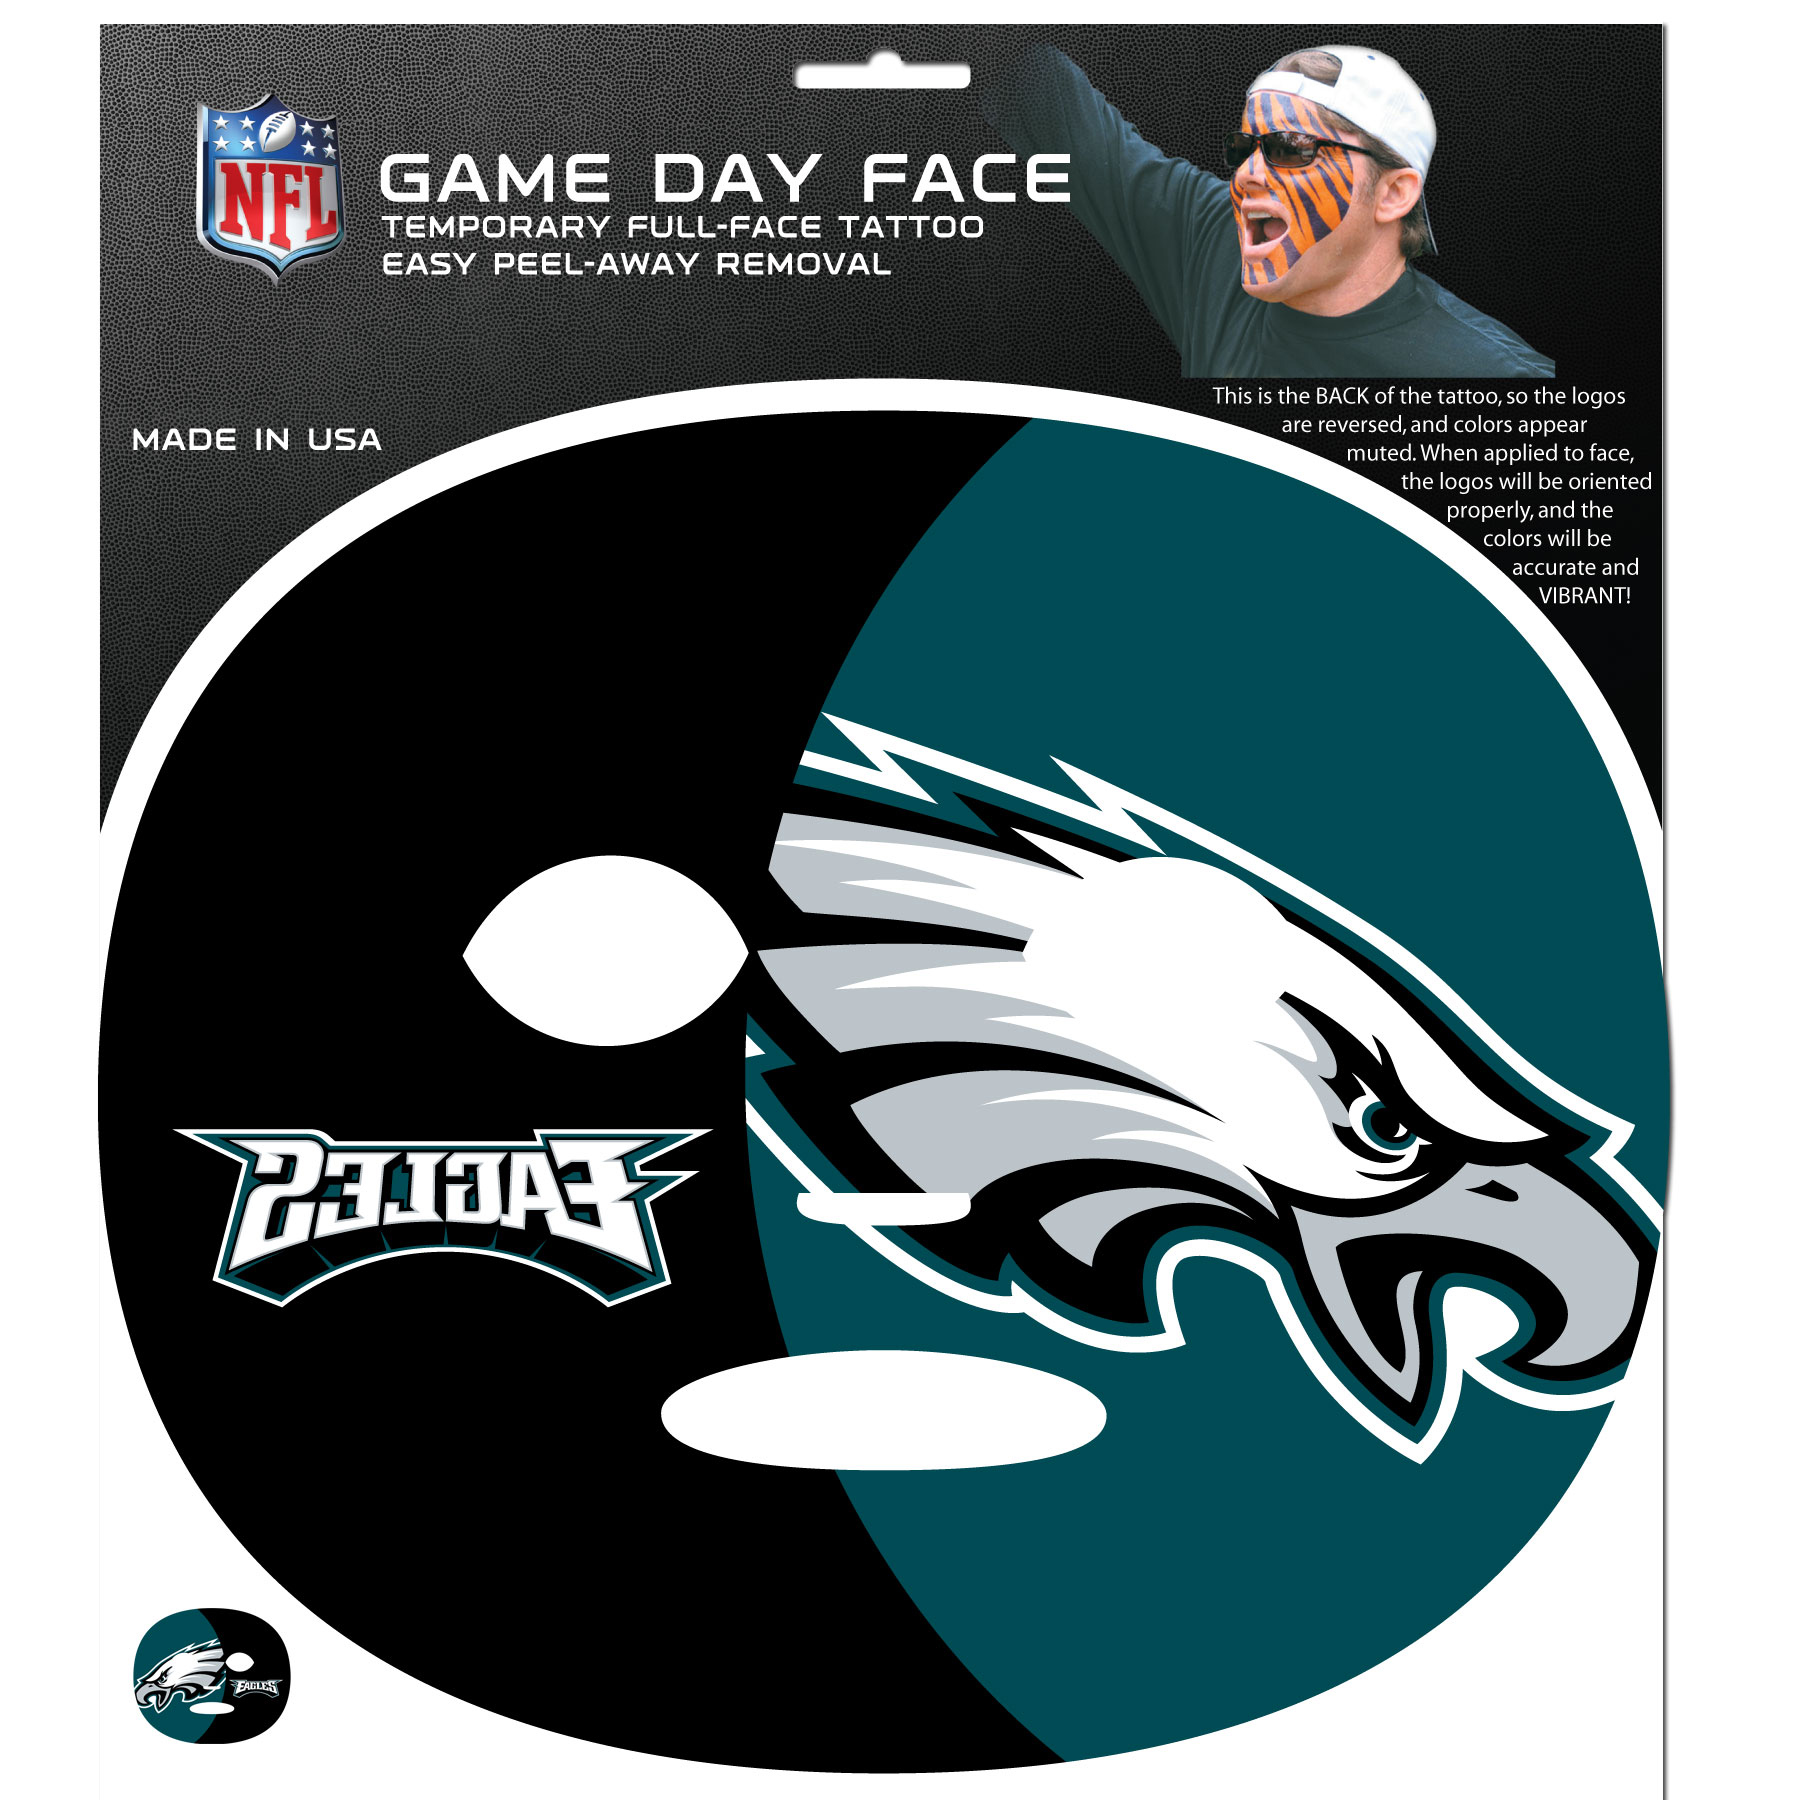 Philadelphia Eagles Set of 4 Game Day Faces - No better way to show your team pride than by painting your face. Siskiyou's Game Day Face Temporary Tattoo isn't your typical face paint. It is a water based application that doesn't smudge, smear or sweat off while you're wearing it and easily peels off after you're done celebrating your team's big Win! The temporary tattoo is large enough to trim down to fit your face. Our Game Day Face Temporary Tattoo's are fun for fans of all ages. You may have seen our product before, these are the same Temporary Face Tattoos as pitched on ABC's Shark Tank.